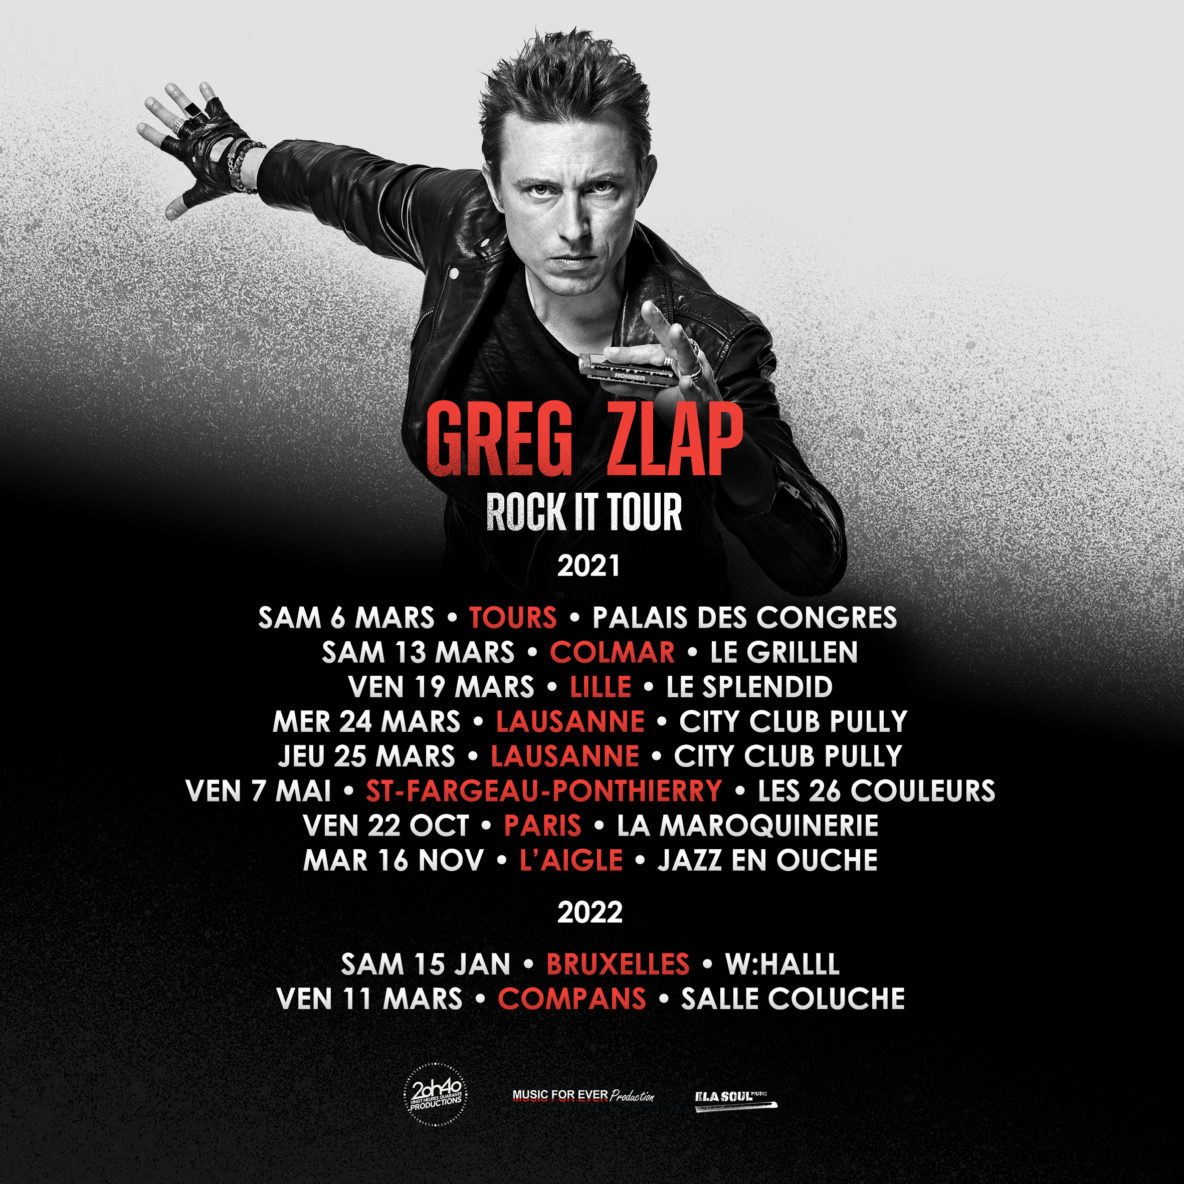 vignette greg zlap rock it tour decembre 2020